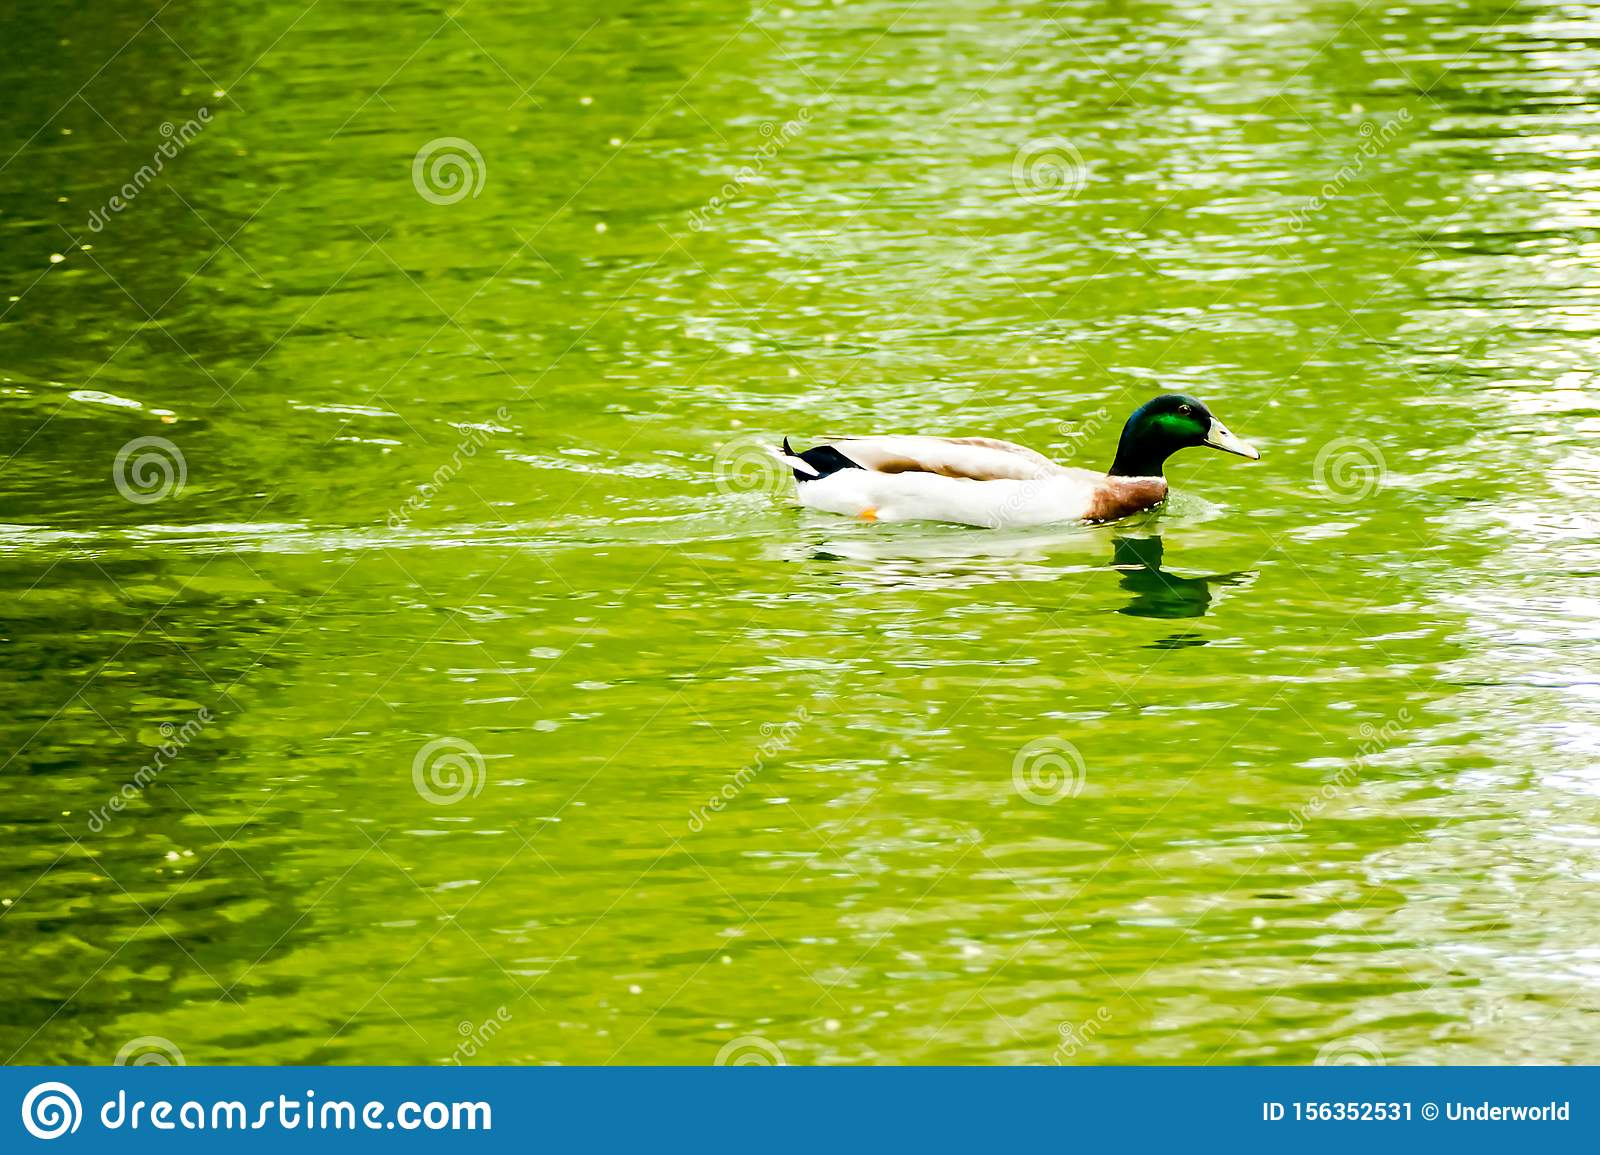 DIGITAL PICTURE Duck in pond IMAGE